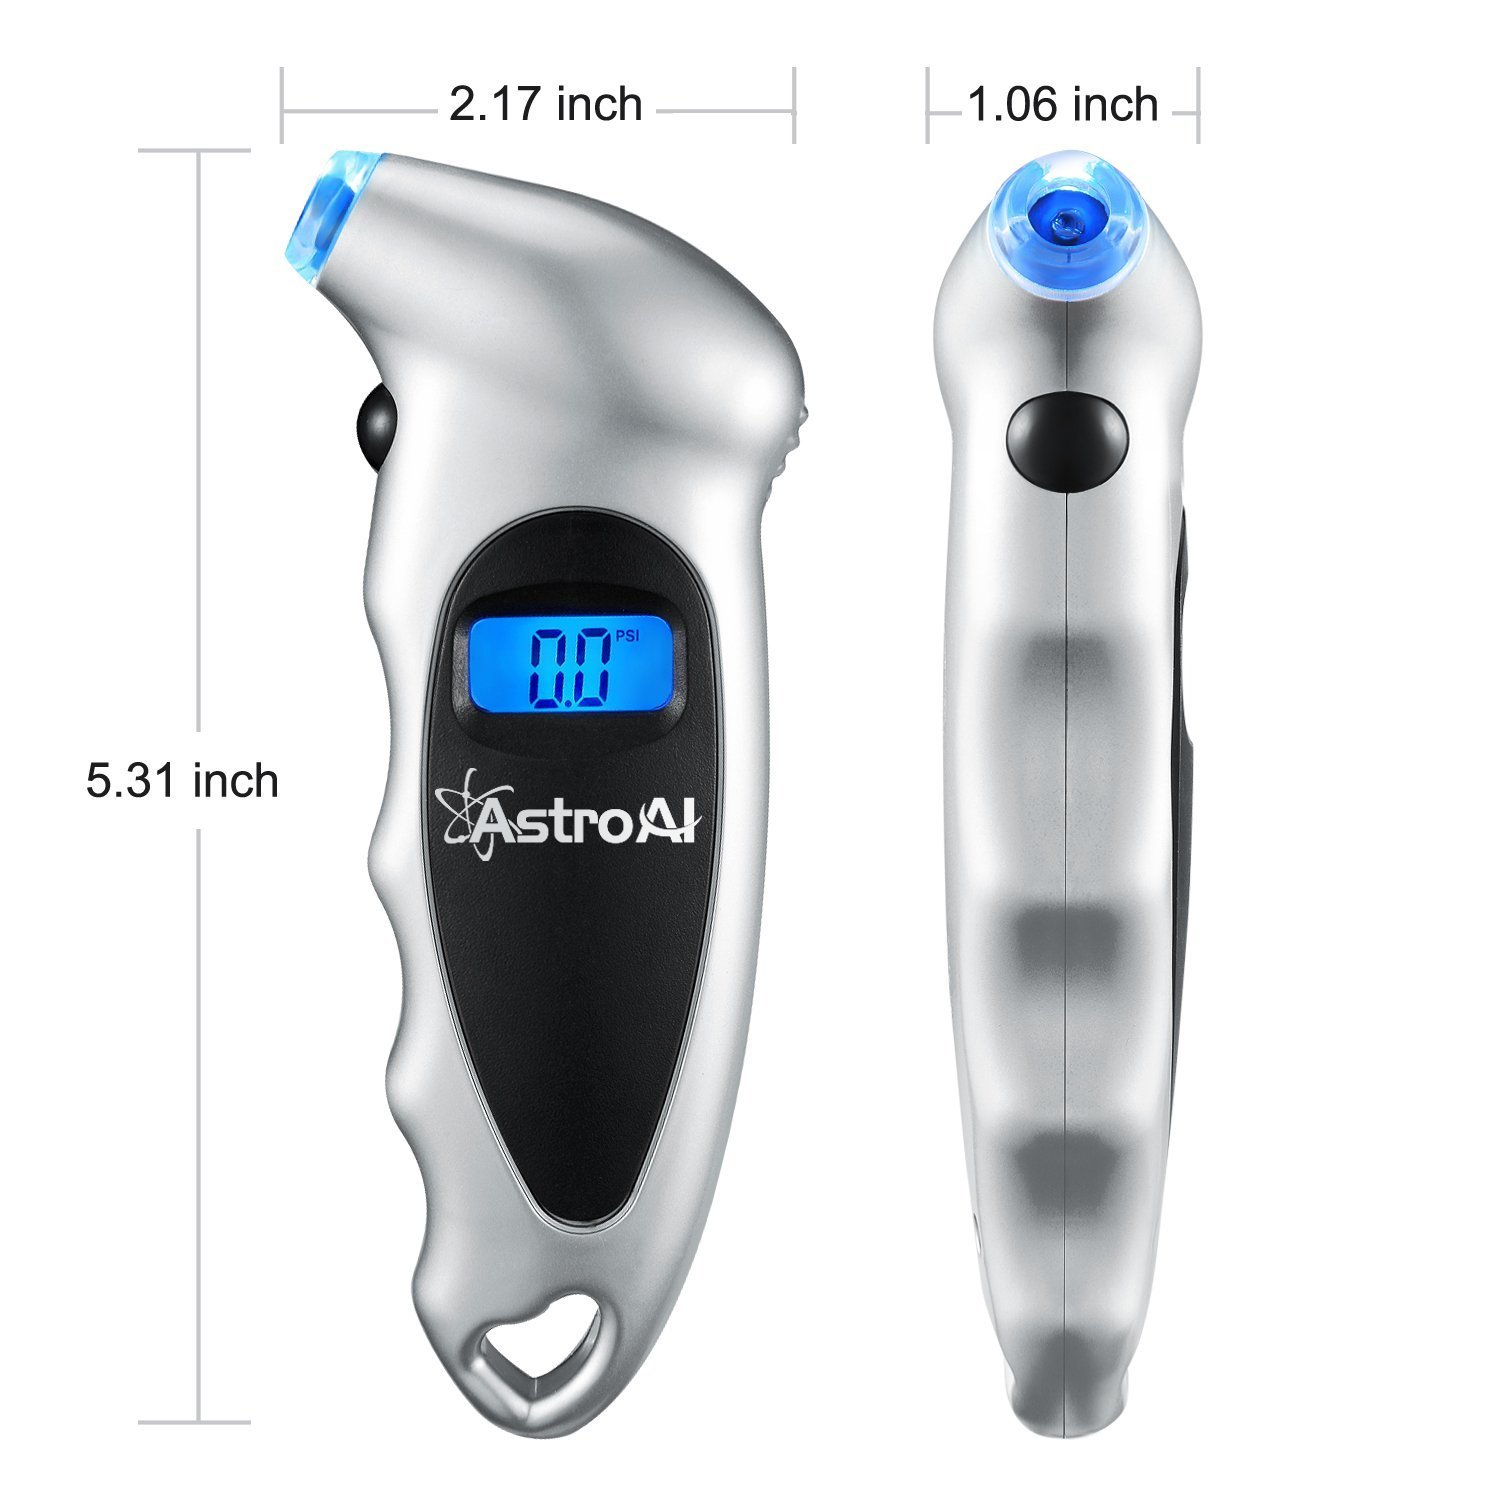 AstroAI Case of 100, Digital Tire Pressure Gauge 150 PSI 4 Settings for Car Truck Bicycle with Backlit LCD and Non-Slip Grip, Silver by AstroAI (Image #4)